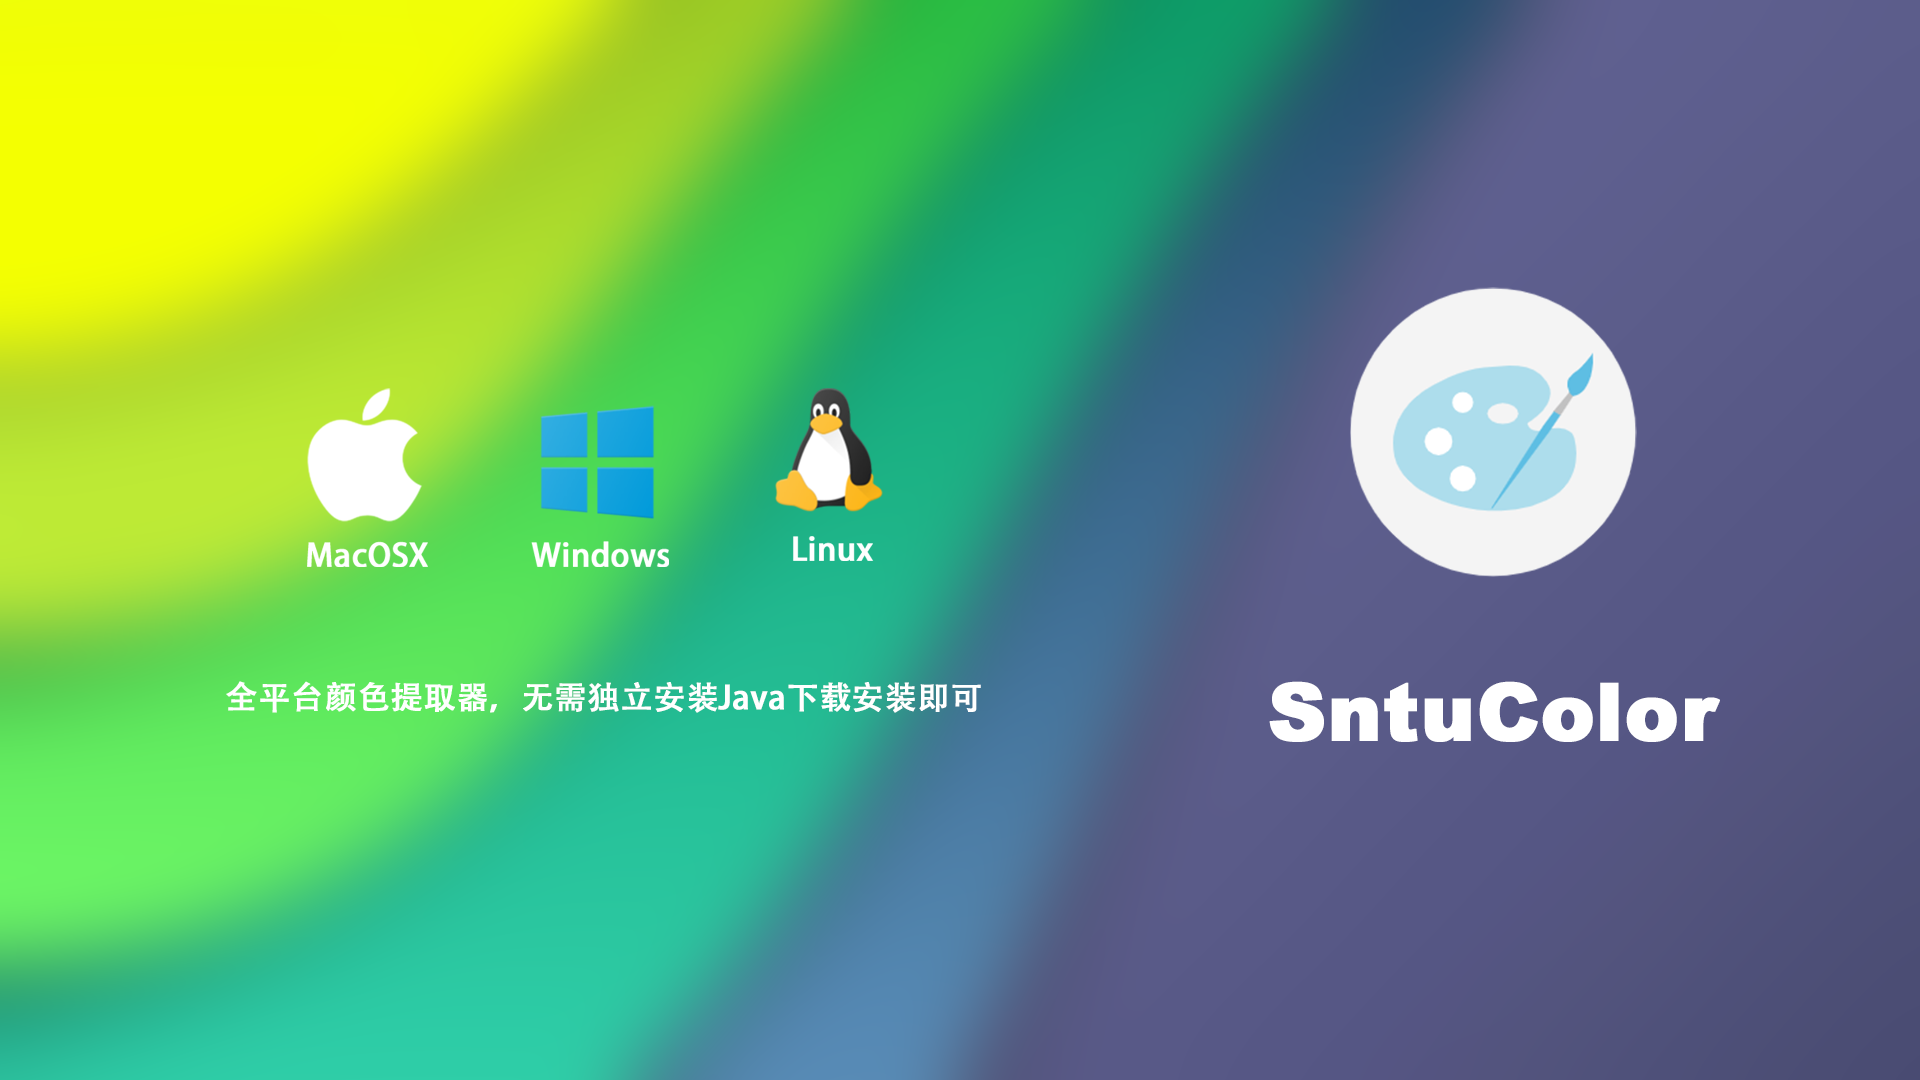 SntuColor广告.png